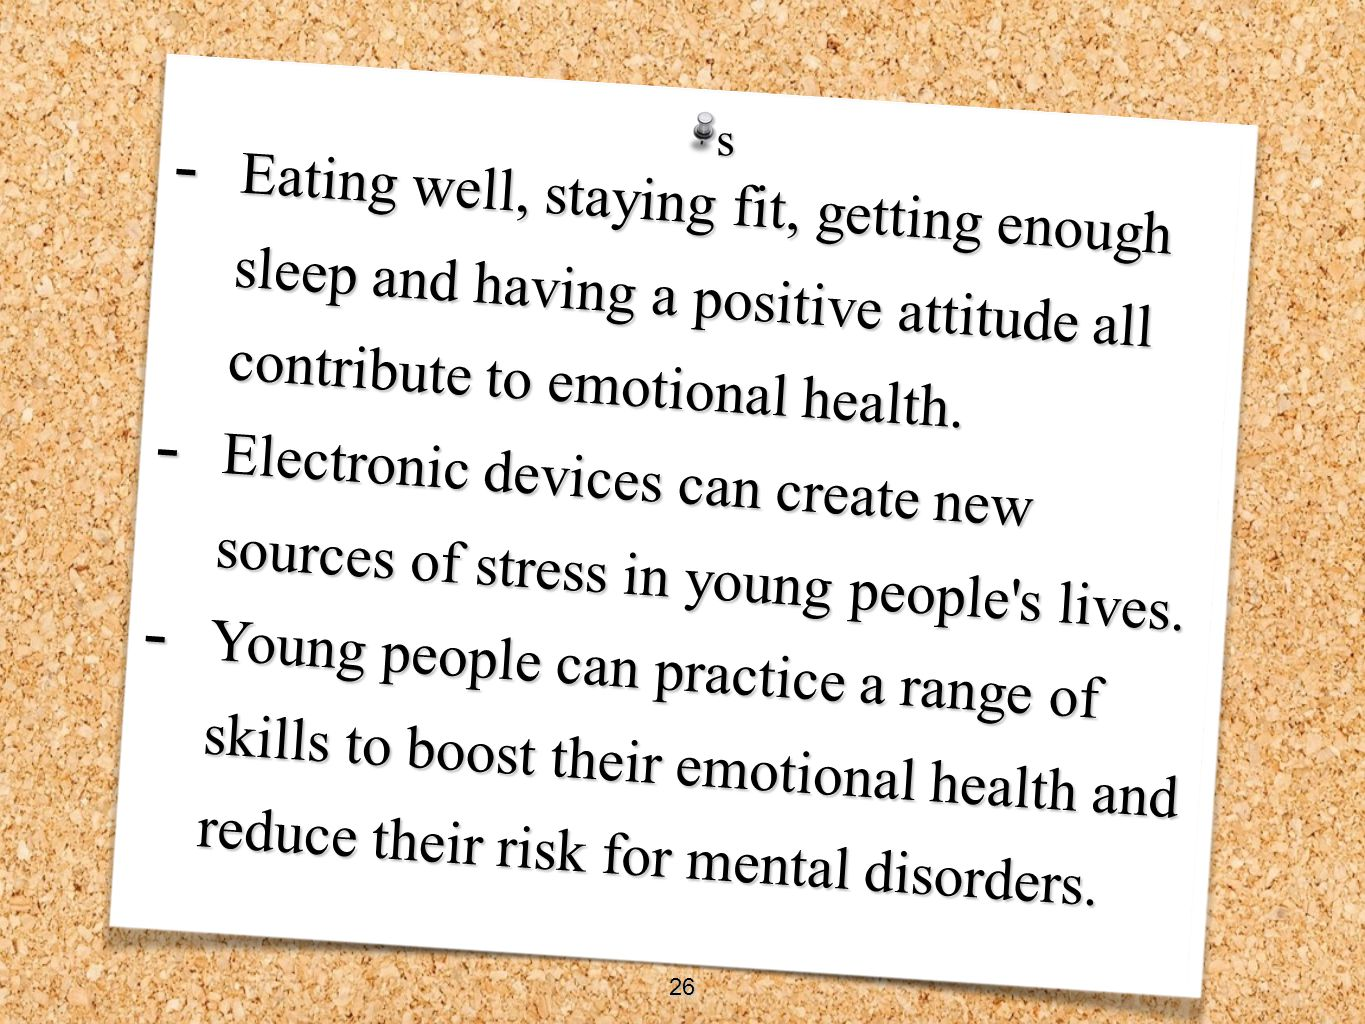 - Eating well, staying fit, getting enough sleep and having a positive attitude all contribute to emotional health. - Electronic devices can create ne